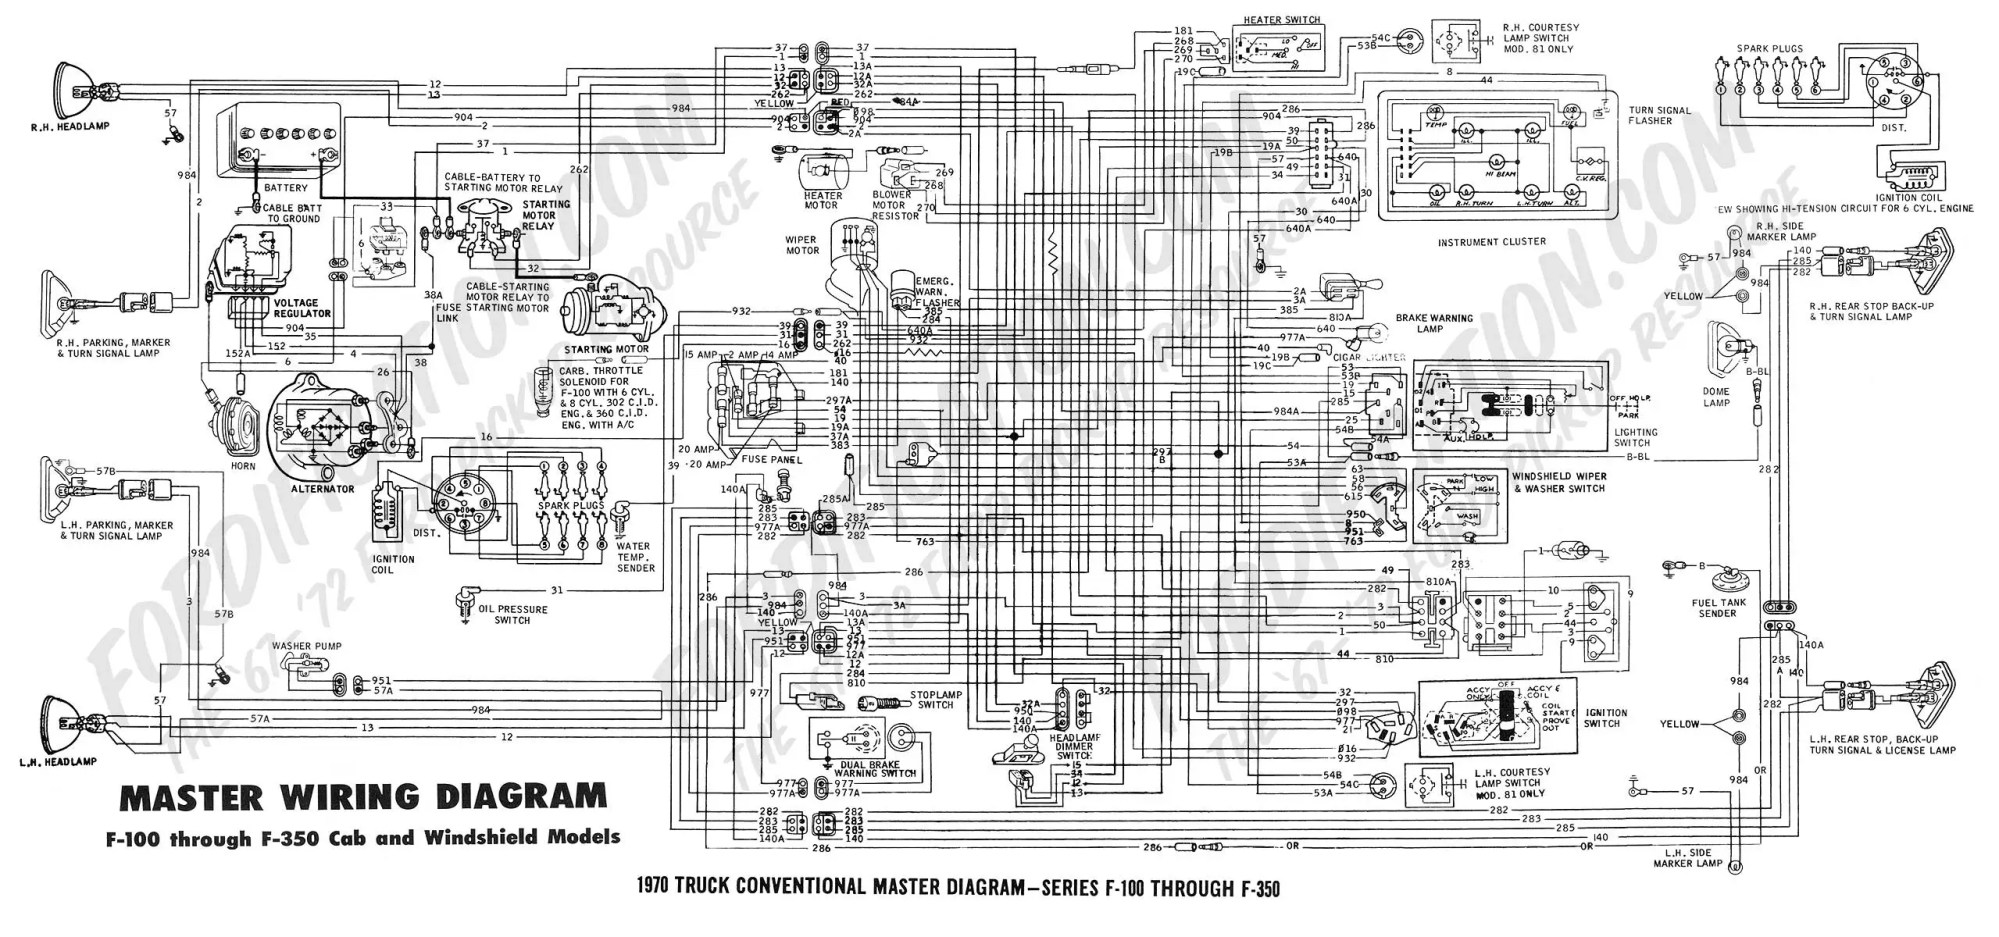 hight resolution of ford wiring harness diagram wiring diagrams ford ranger wiring harness diagram ford wire harness diagram wiring